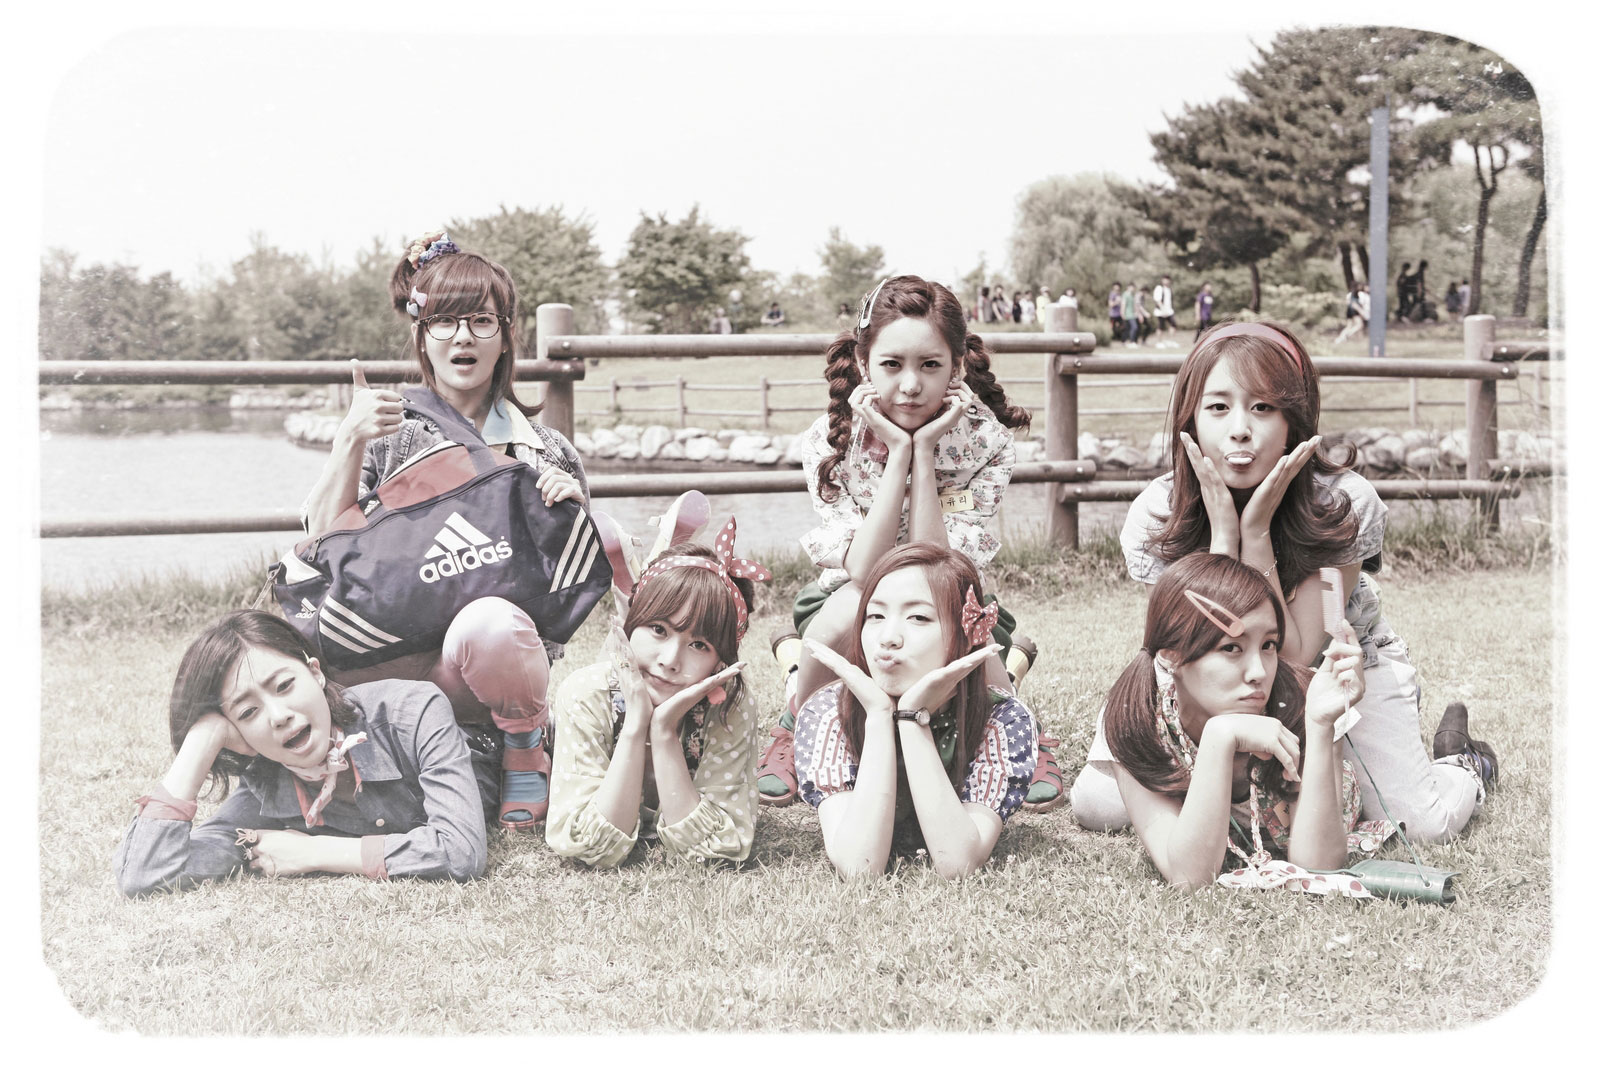 T-ara Roly Poly HD concept photo